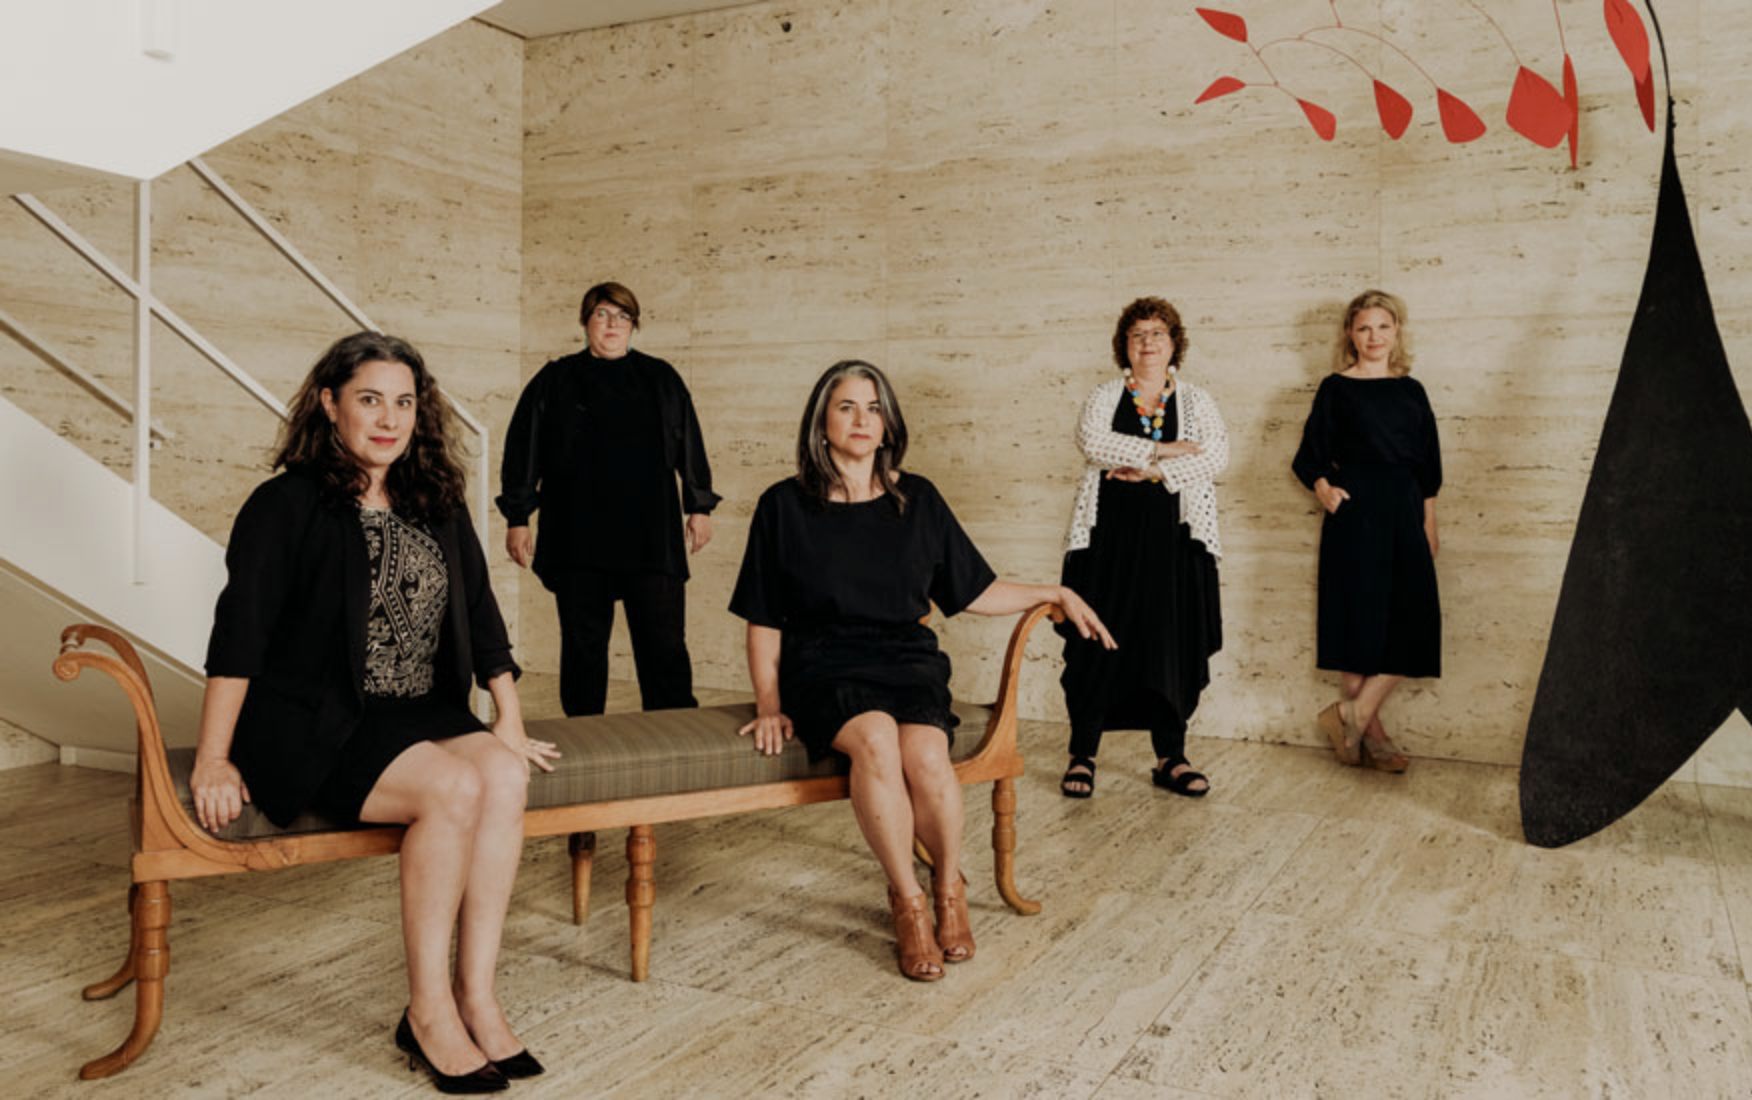 Chicago's power players. Meet five dynamic museum directors and curators who are at the forefront of the city's vibrant art scene - Christie's